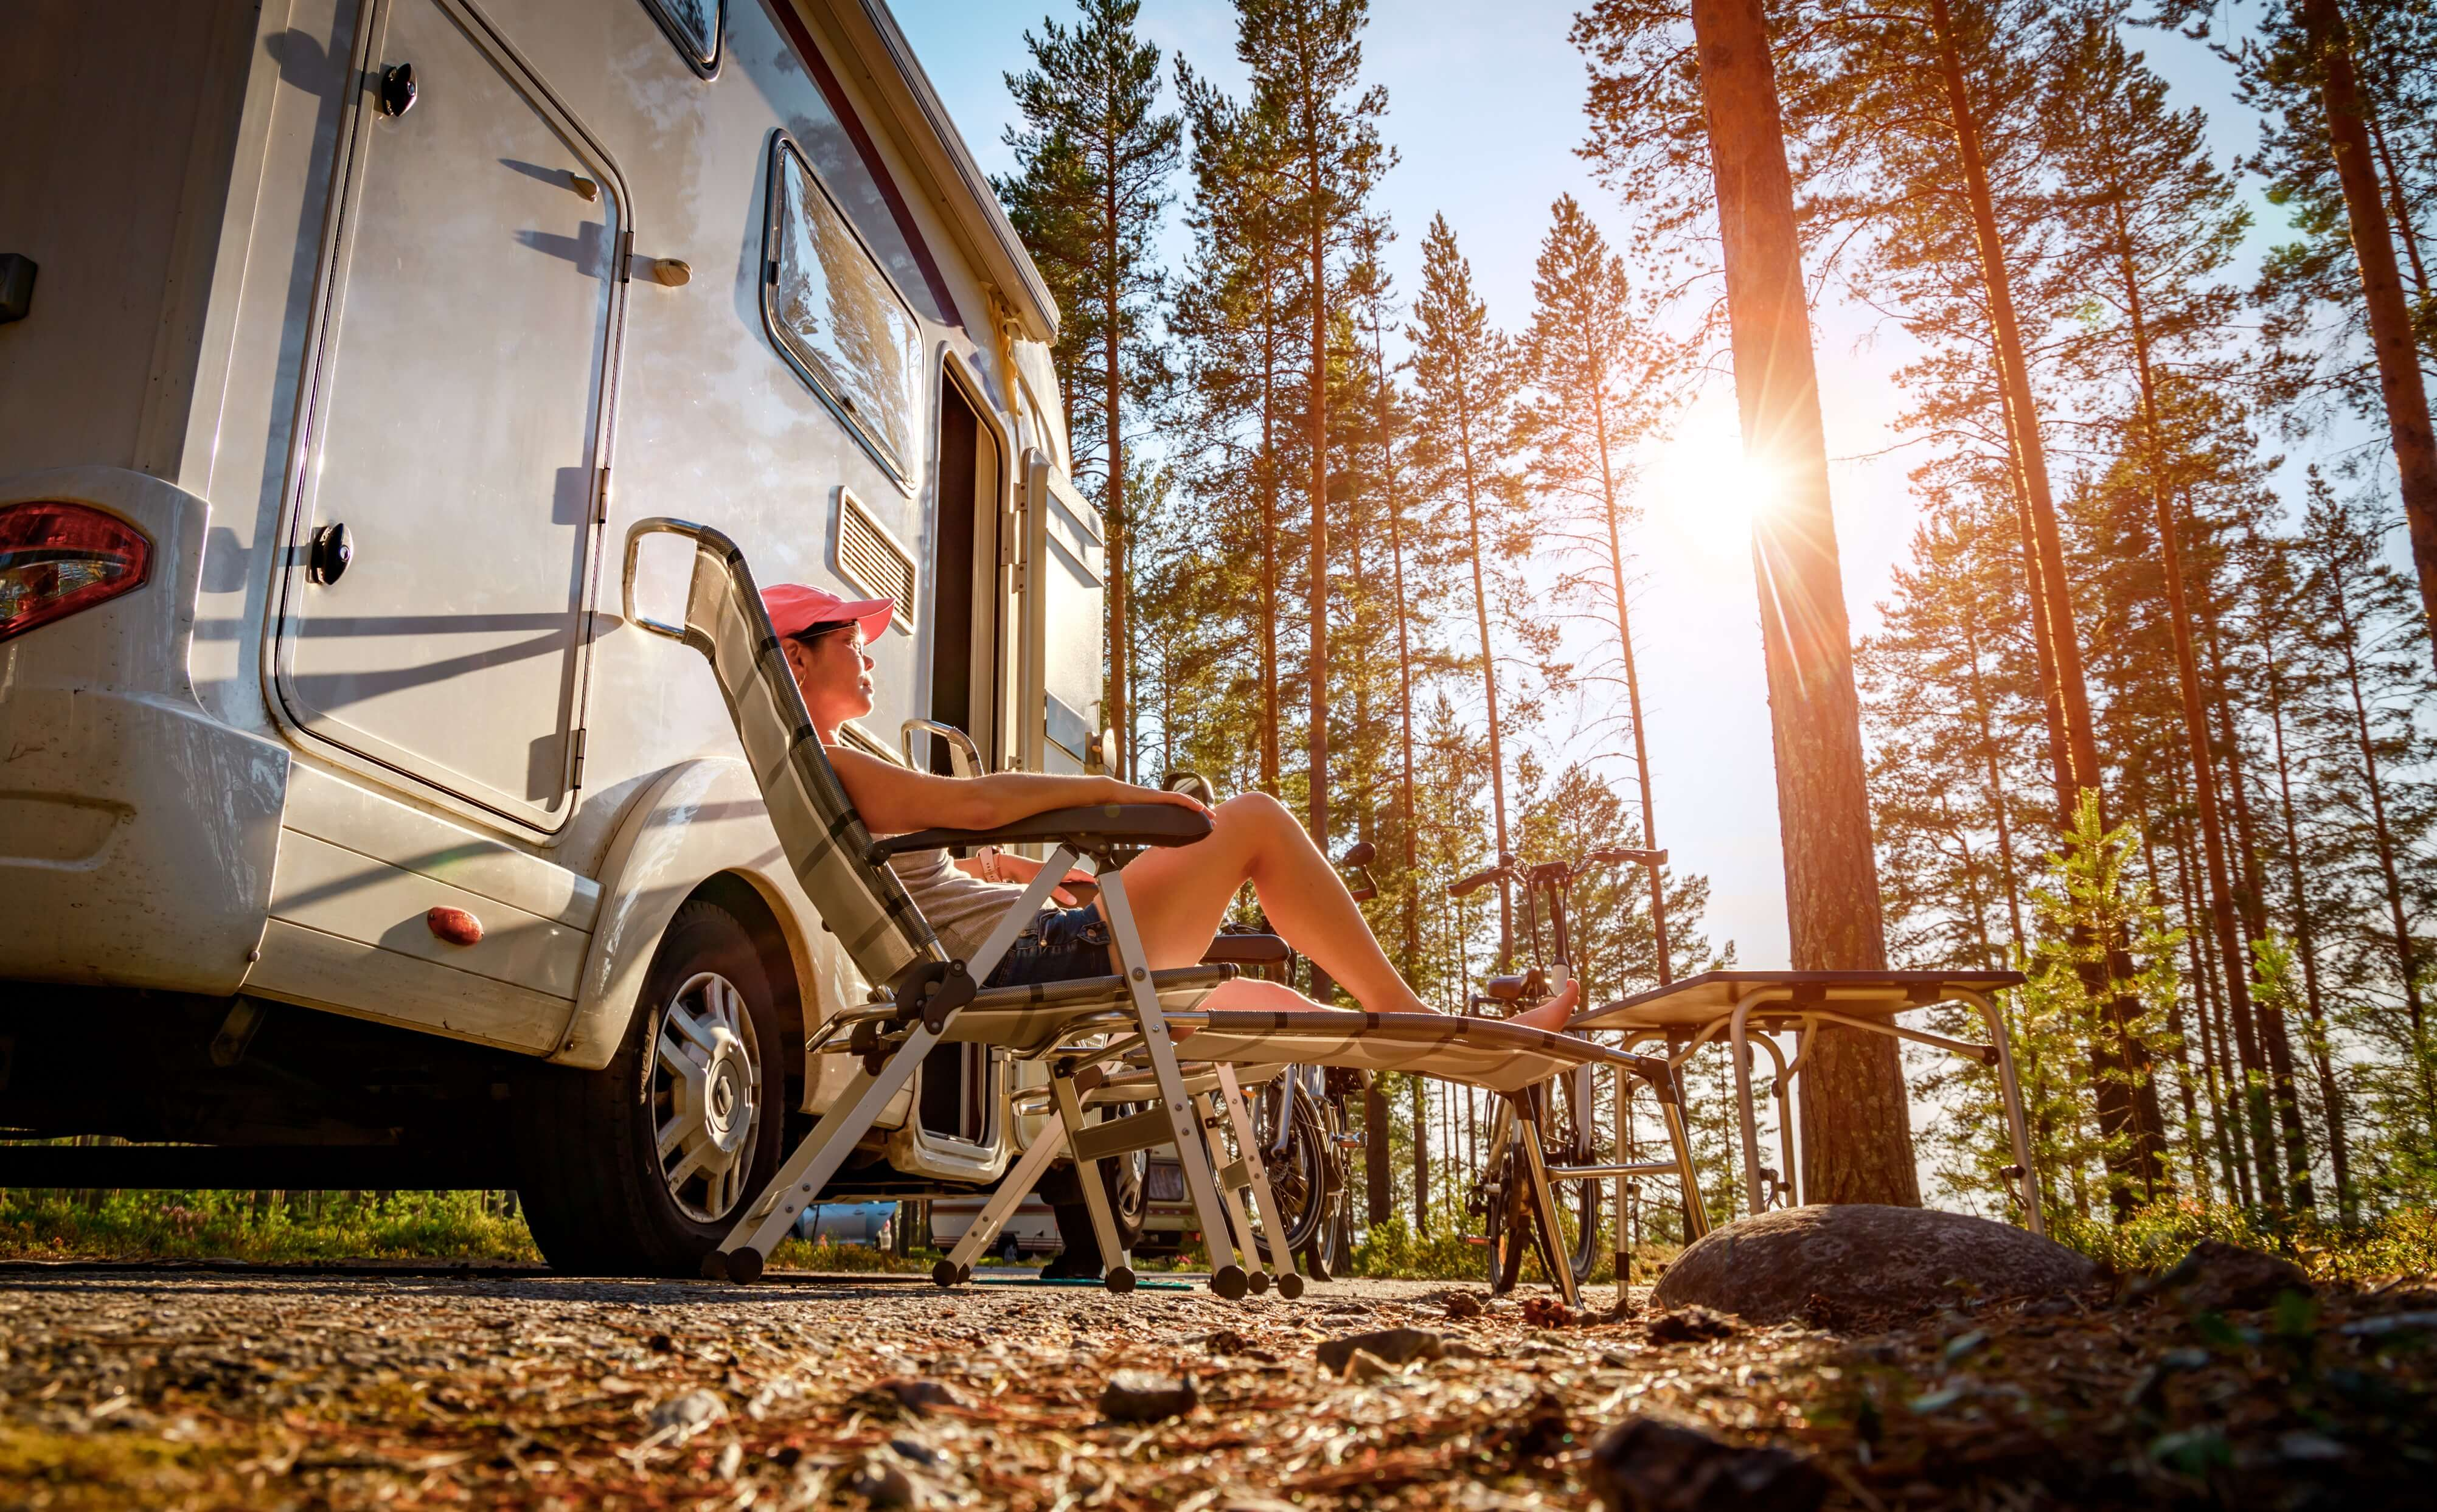 Get Your RV Ready for Your Summer Getaways